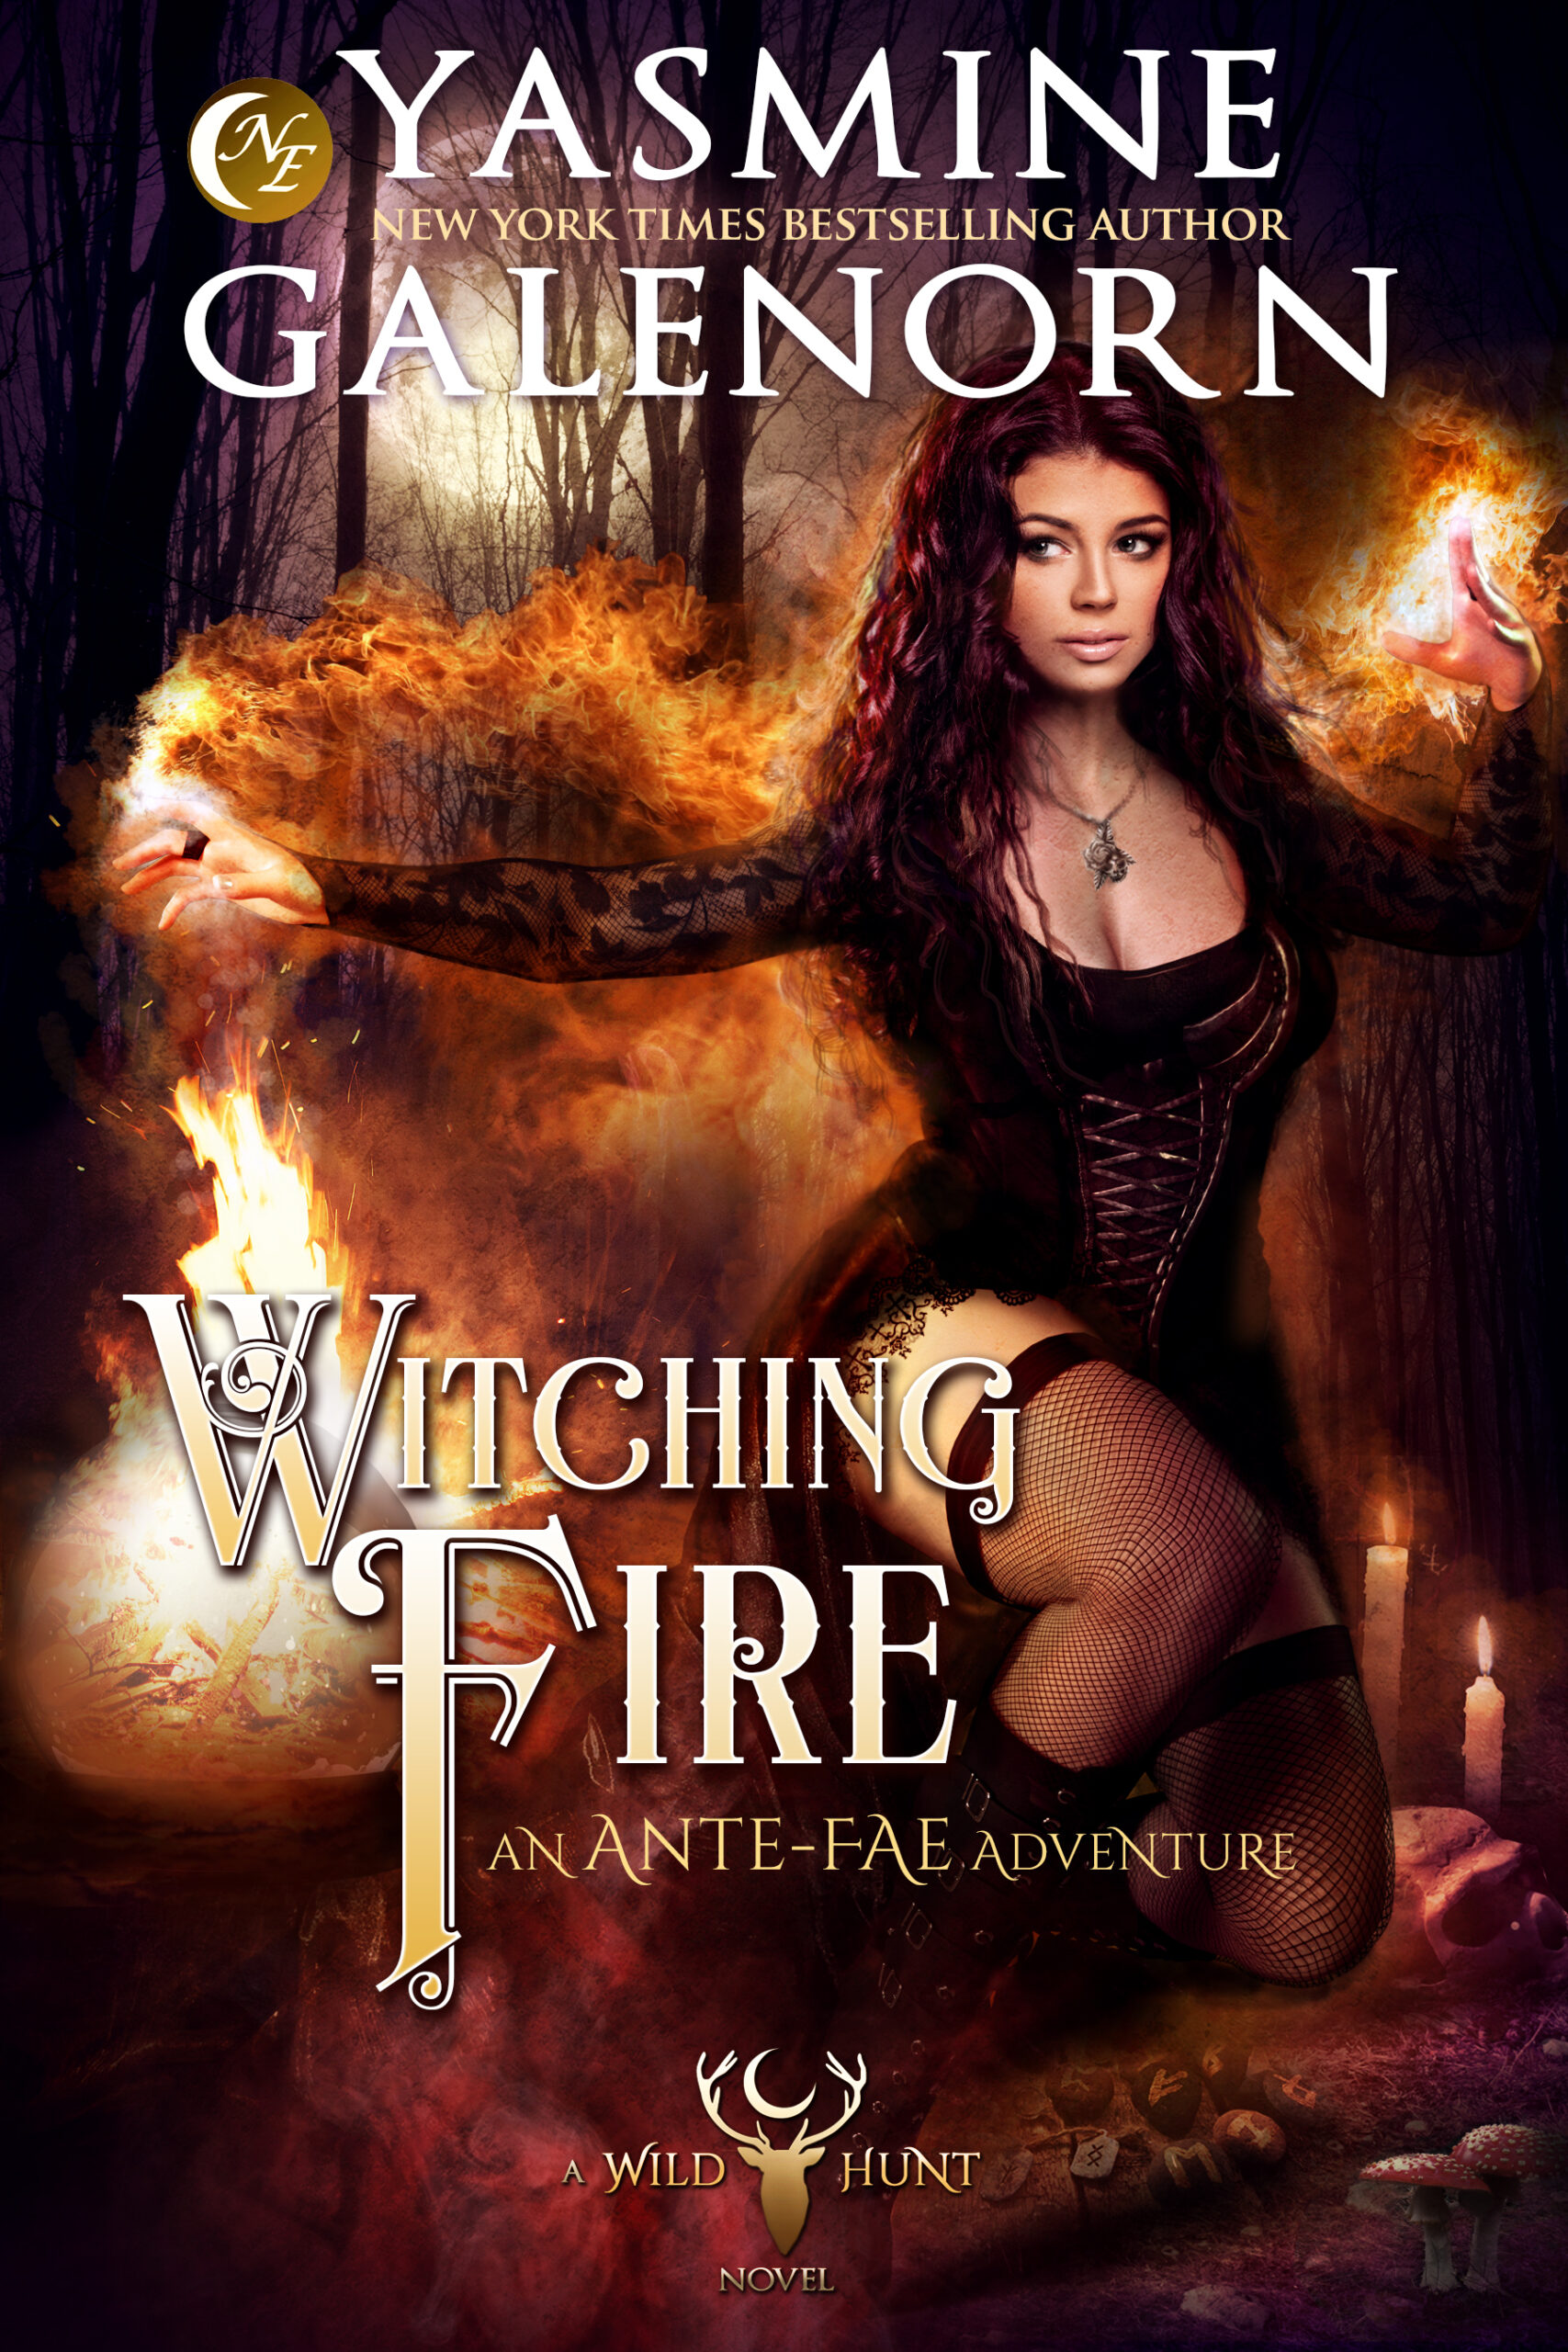 Witching Fire